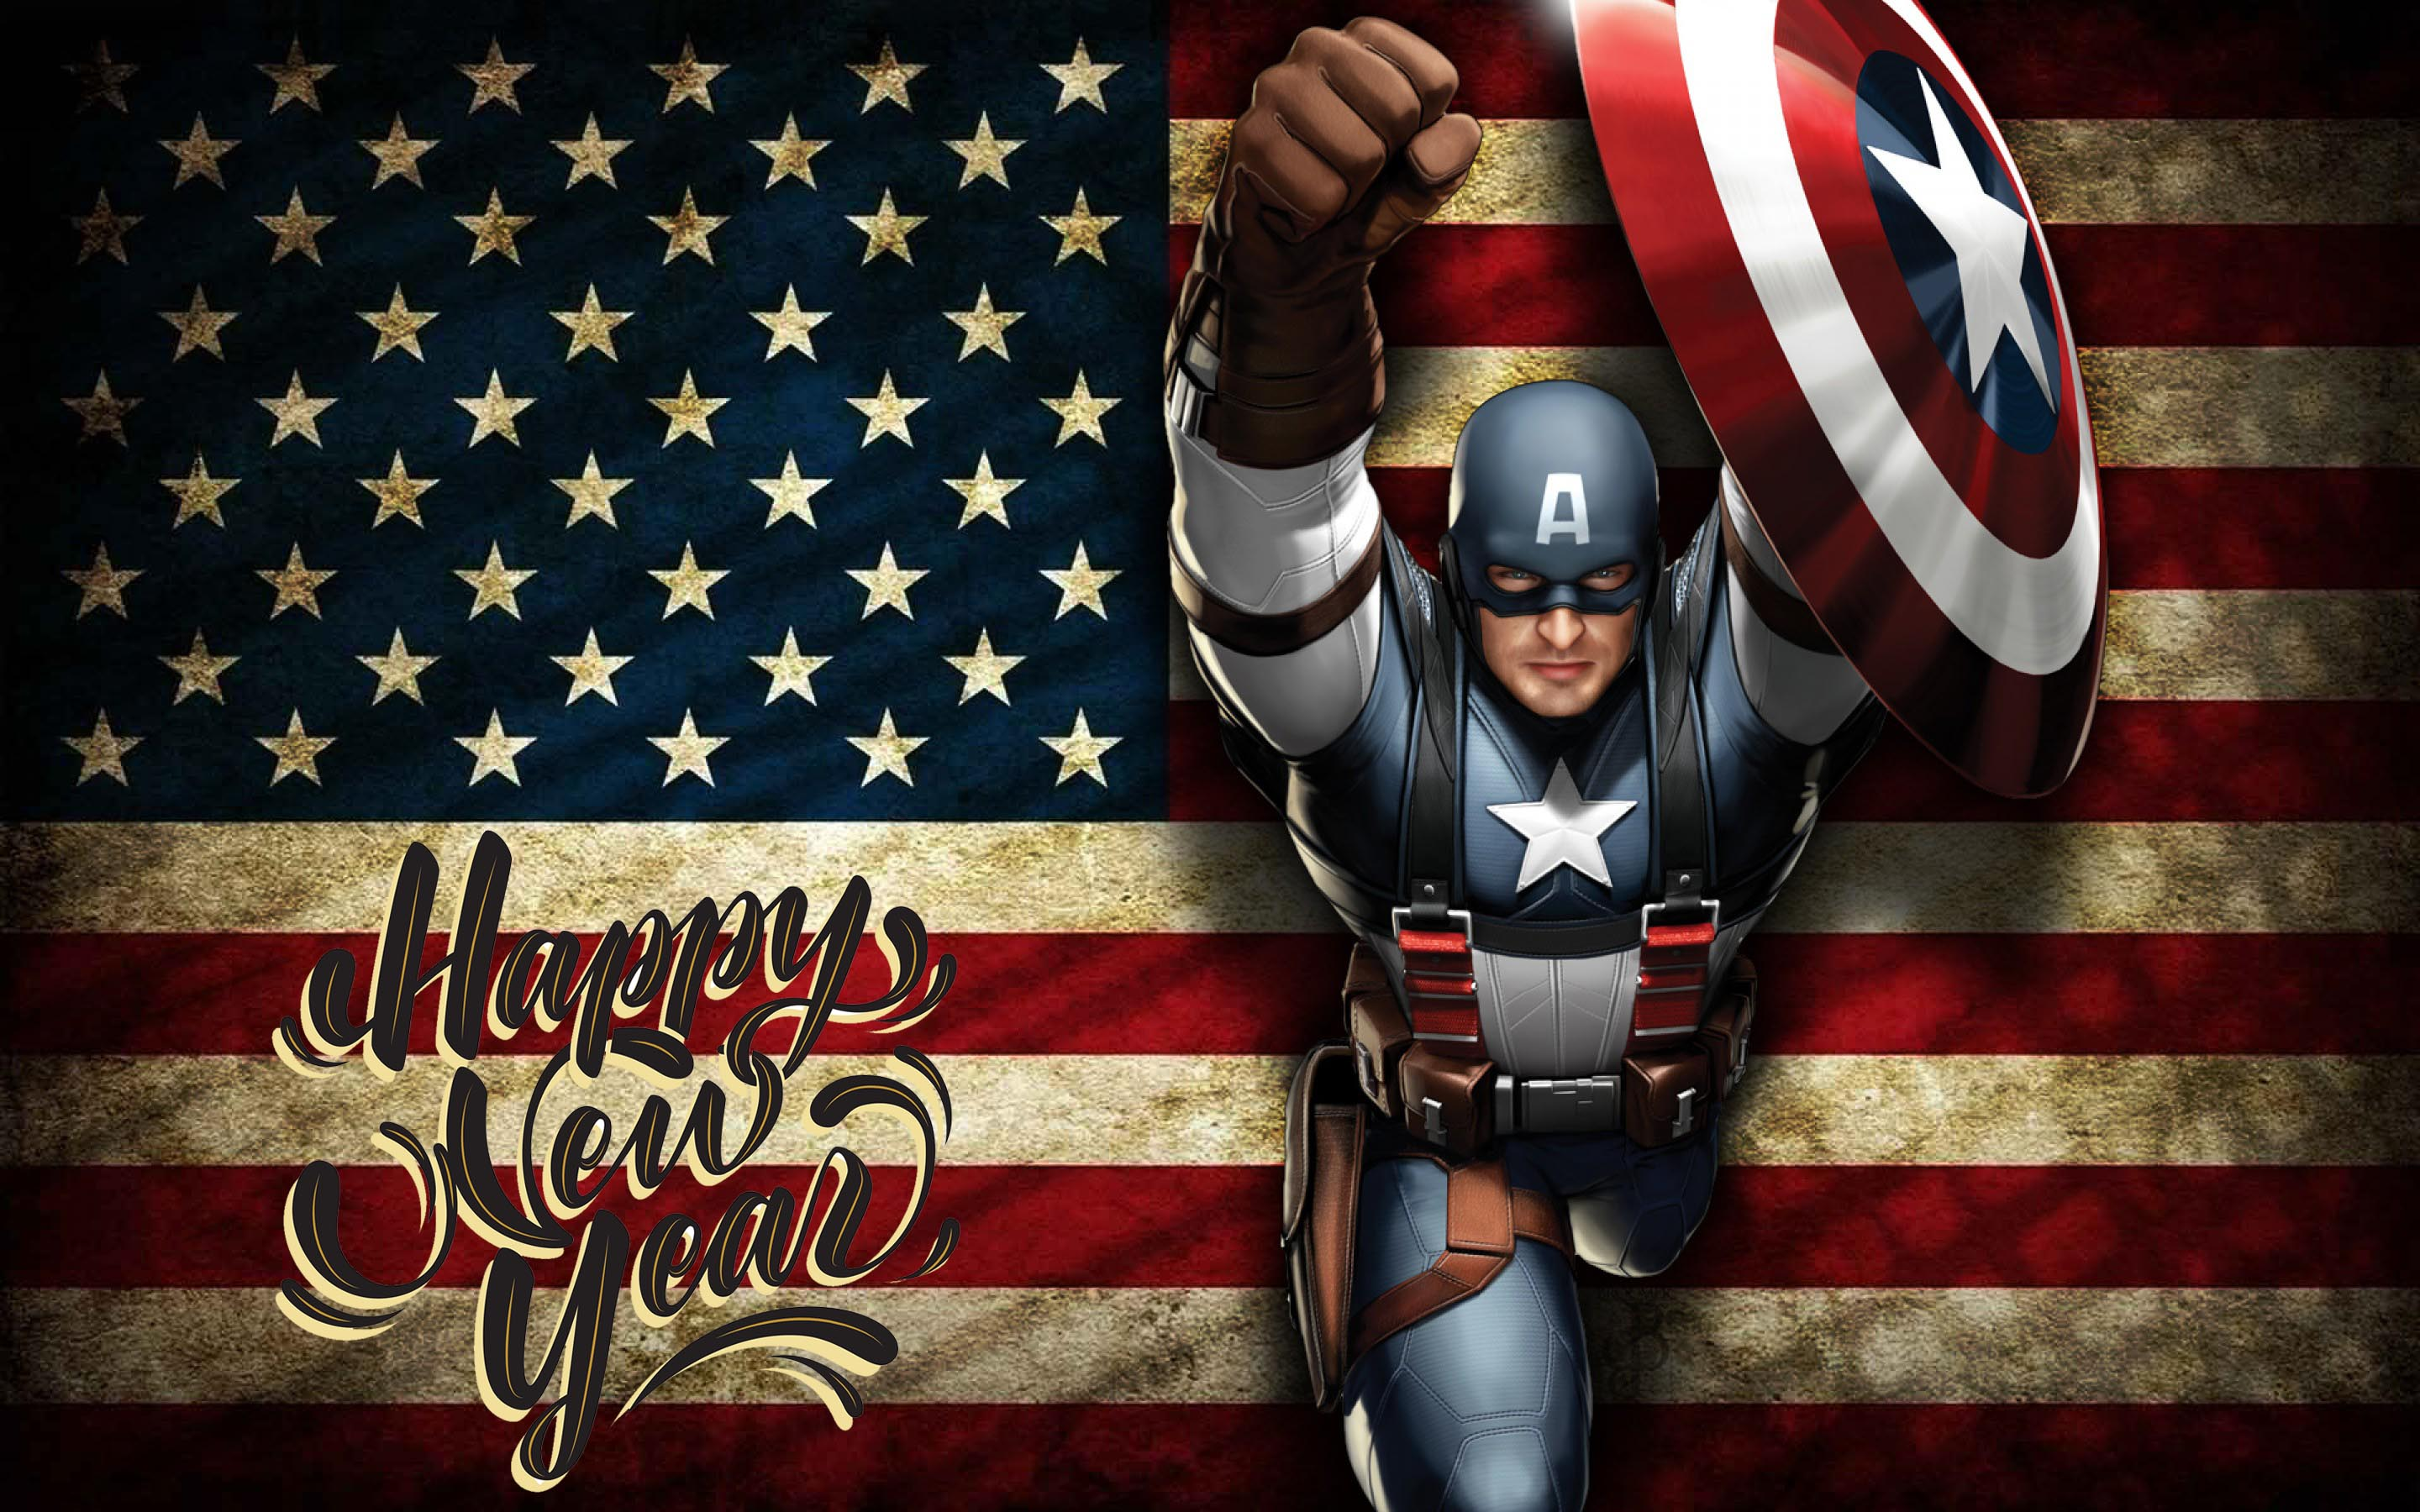 happy new year wishes super hero captain america kids hd wallpaper